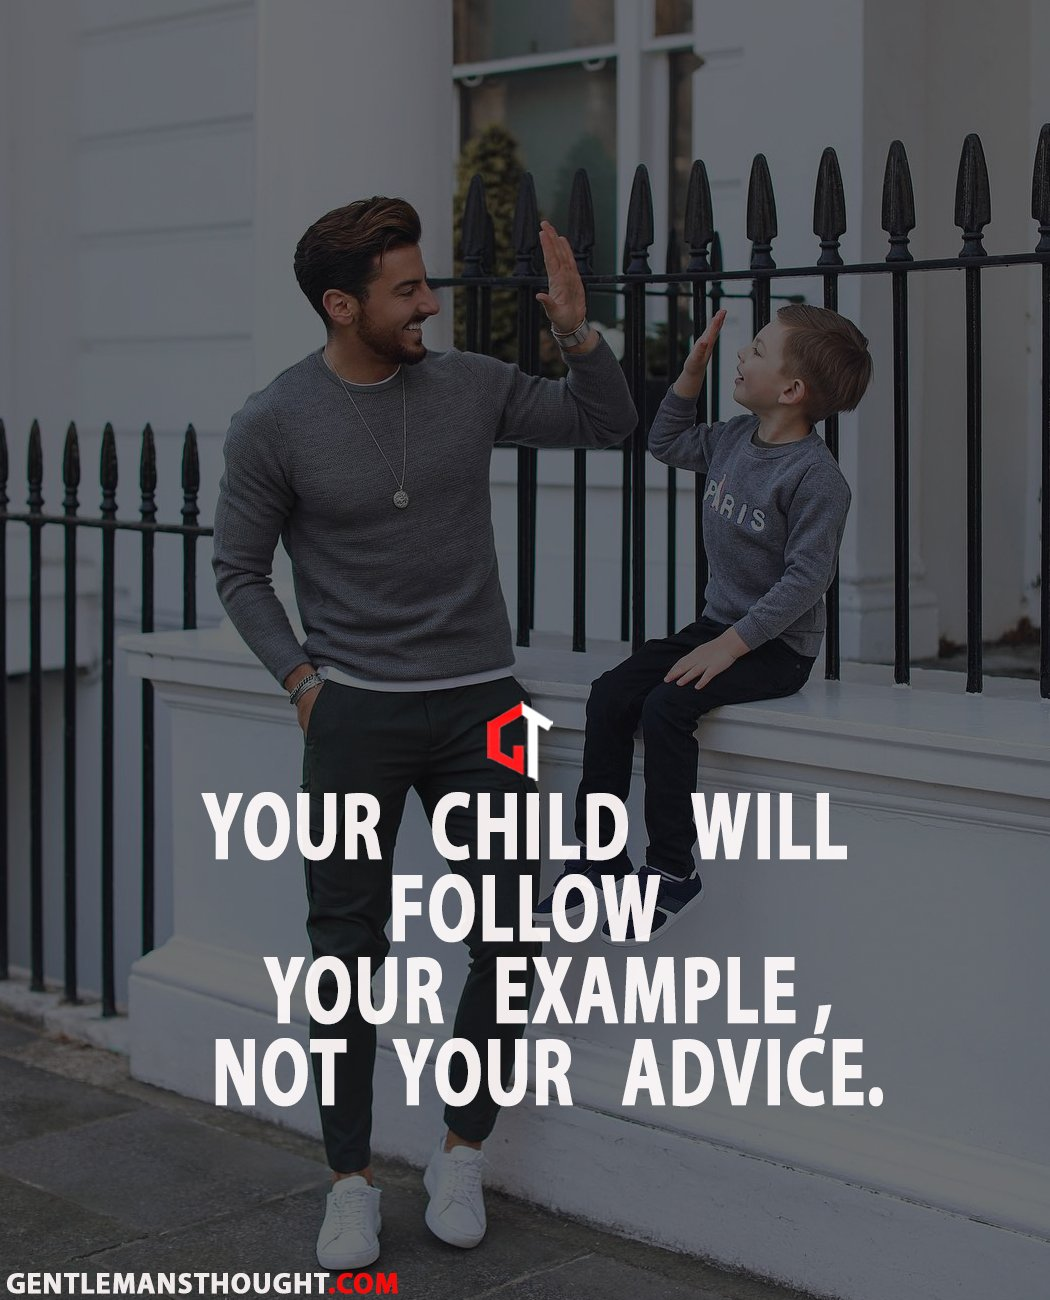 your child will follow your example , not your advice